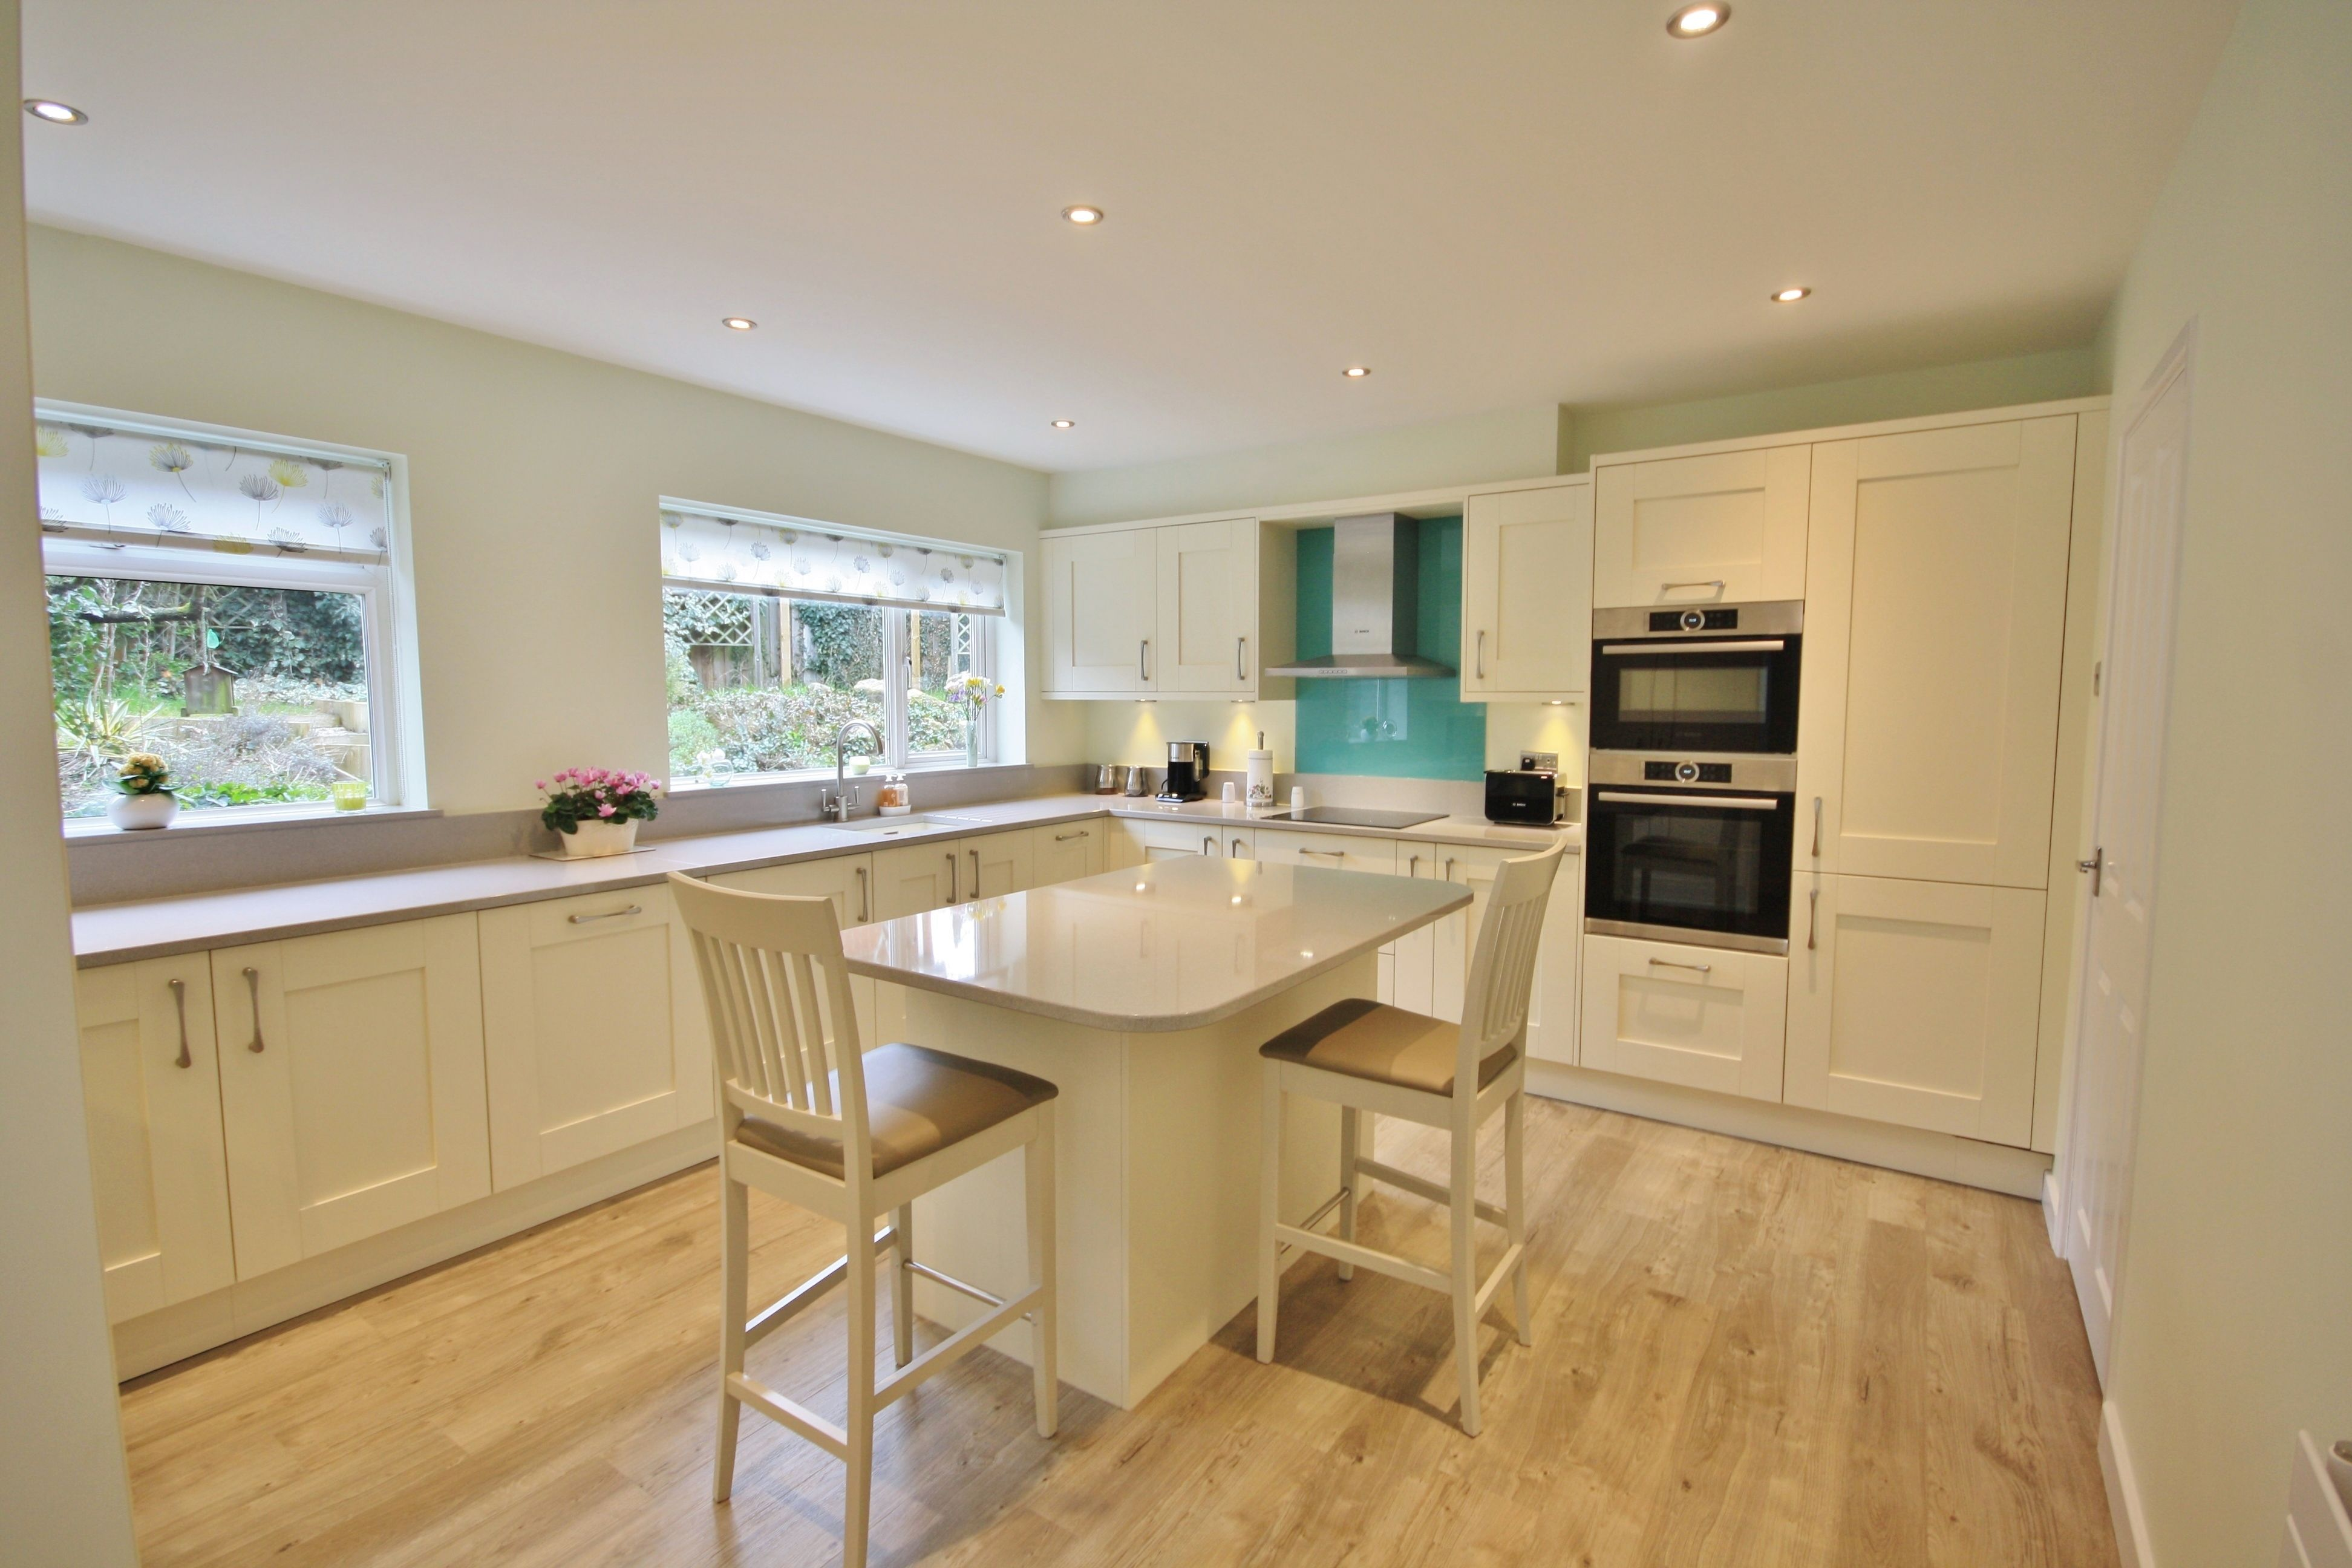 Shaker kitchen design in Ivory, with light Grey worktops. | home ...